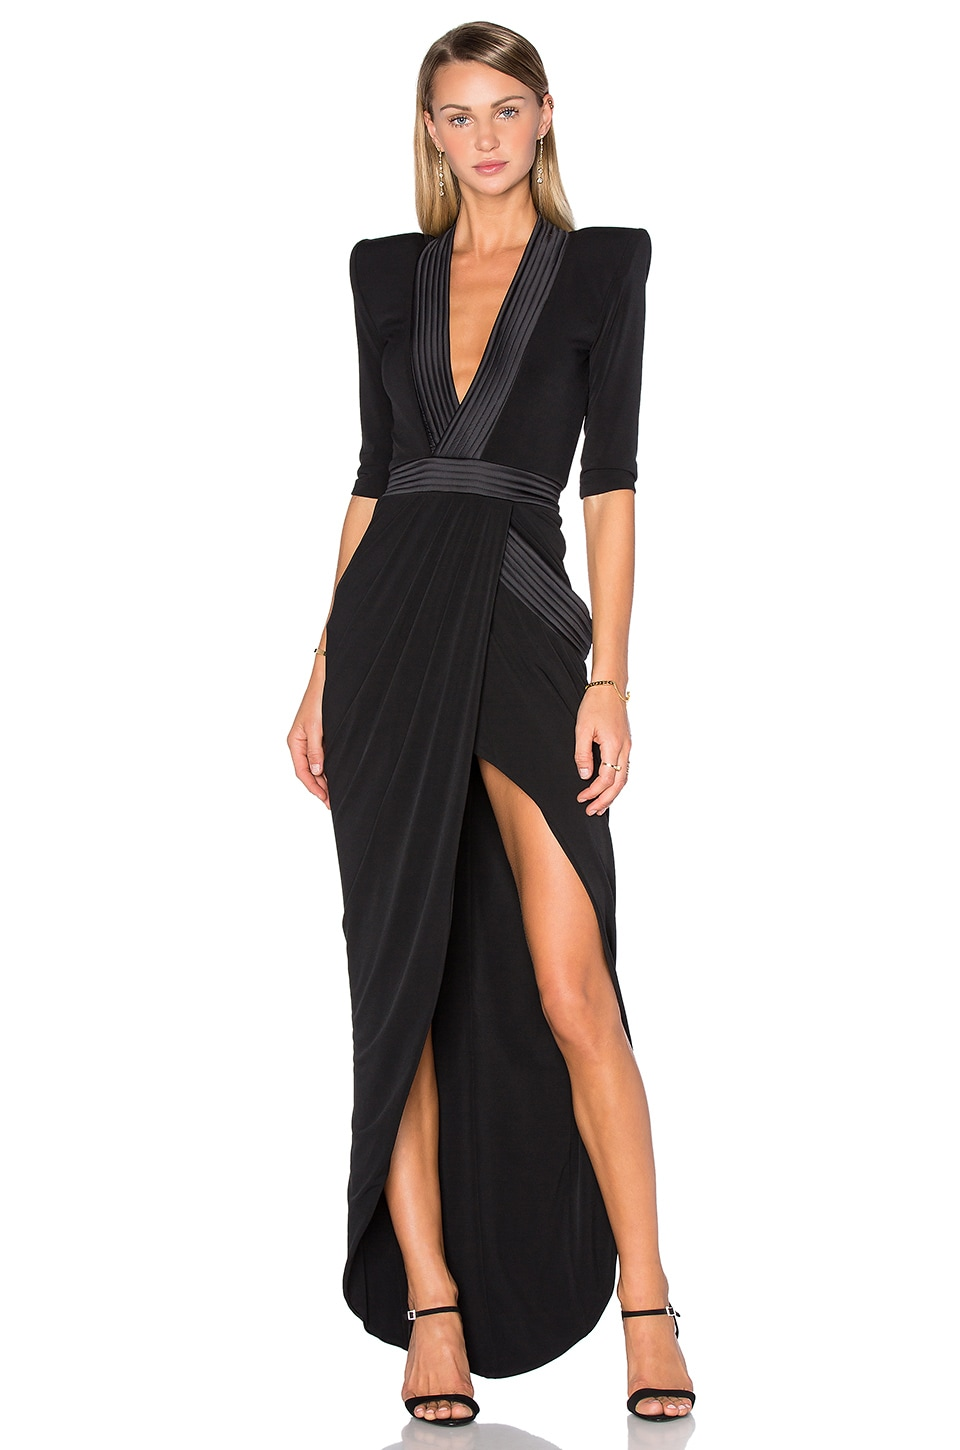 Zhivago Eye Of Horus Gown in Black